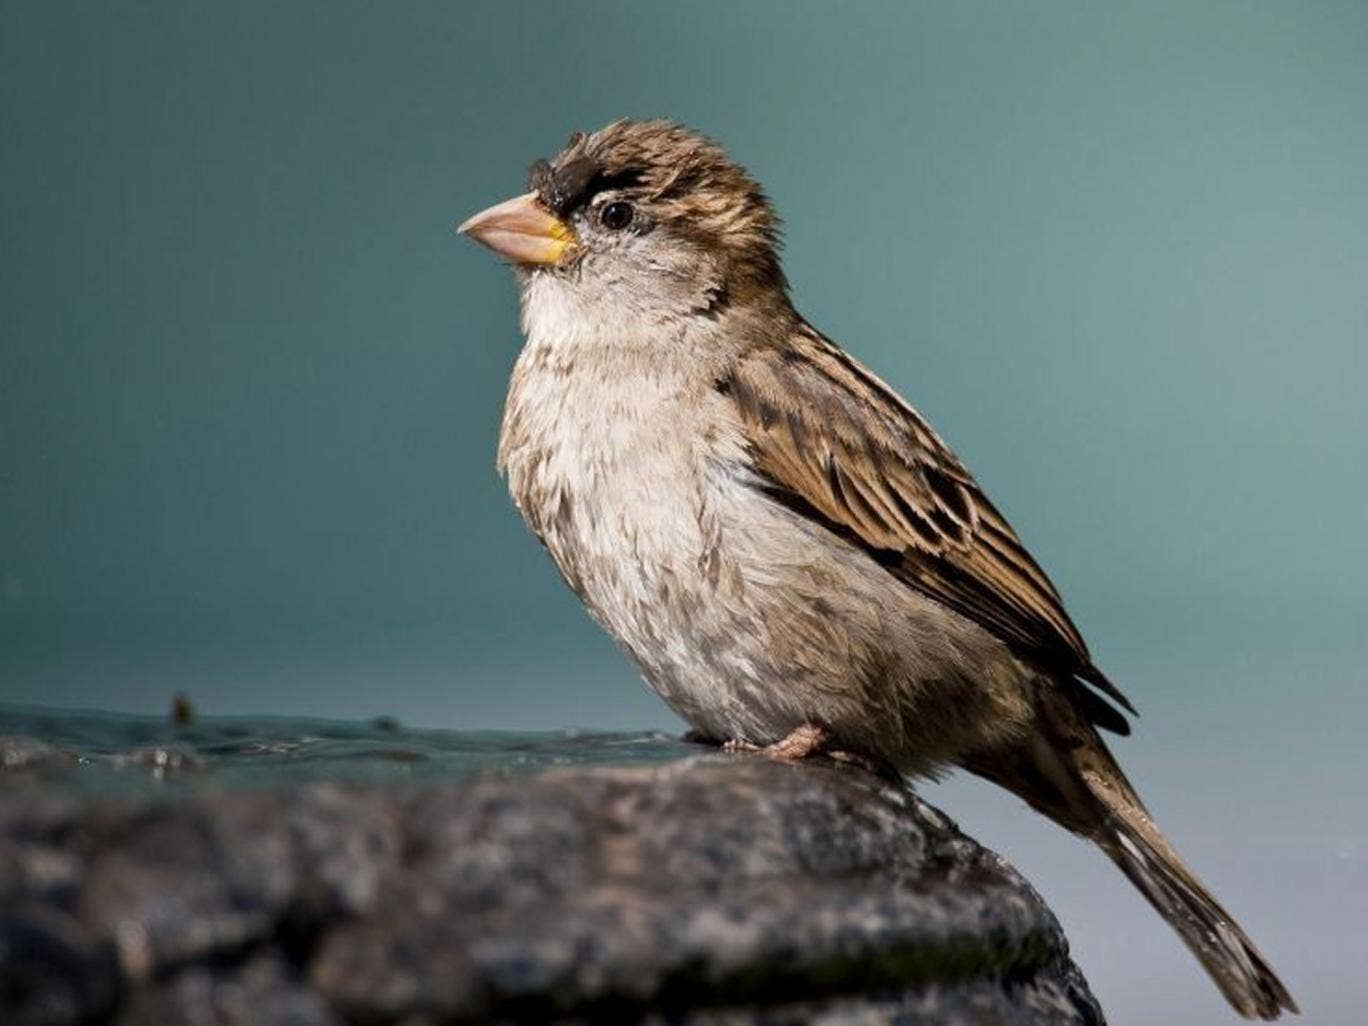 The sparrow's decline has levelled off, according to the British Trust for Ornithology